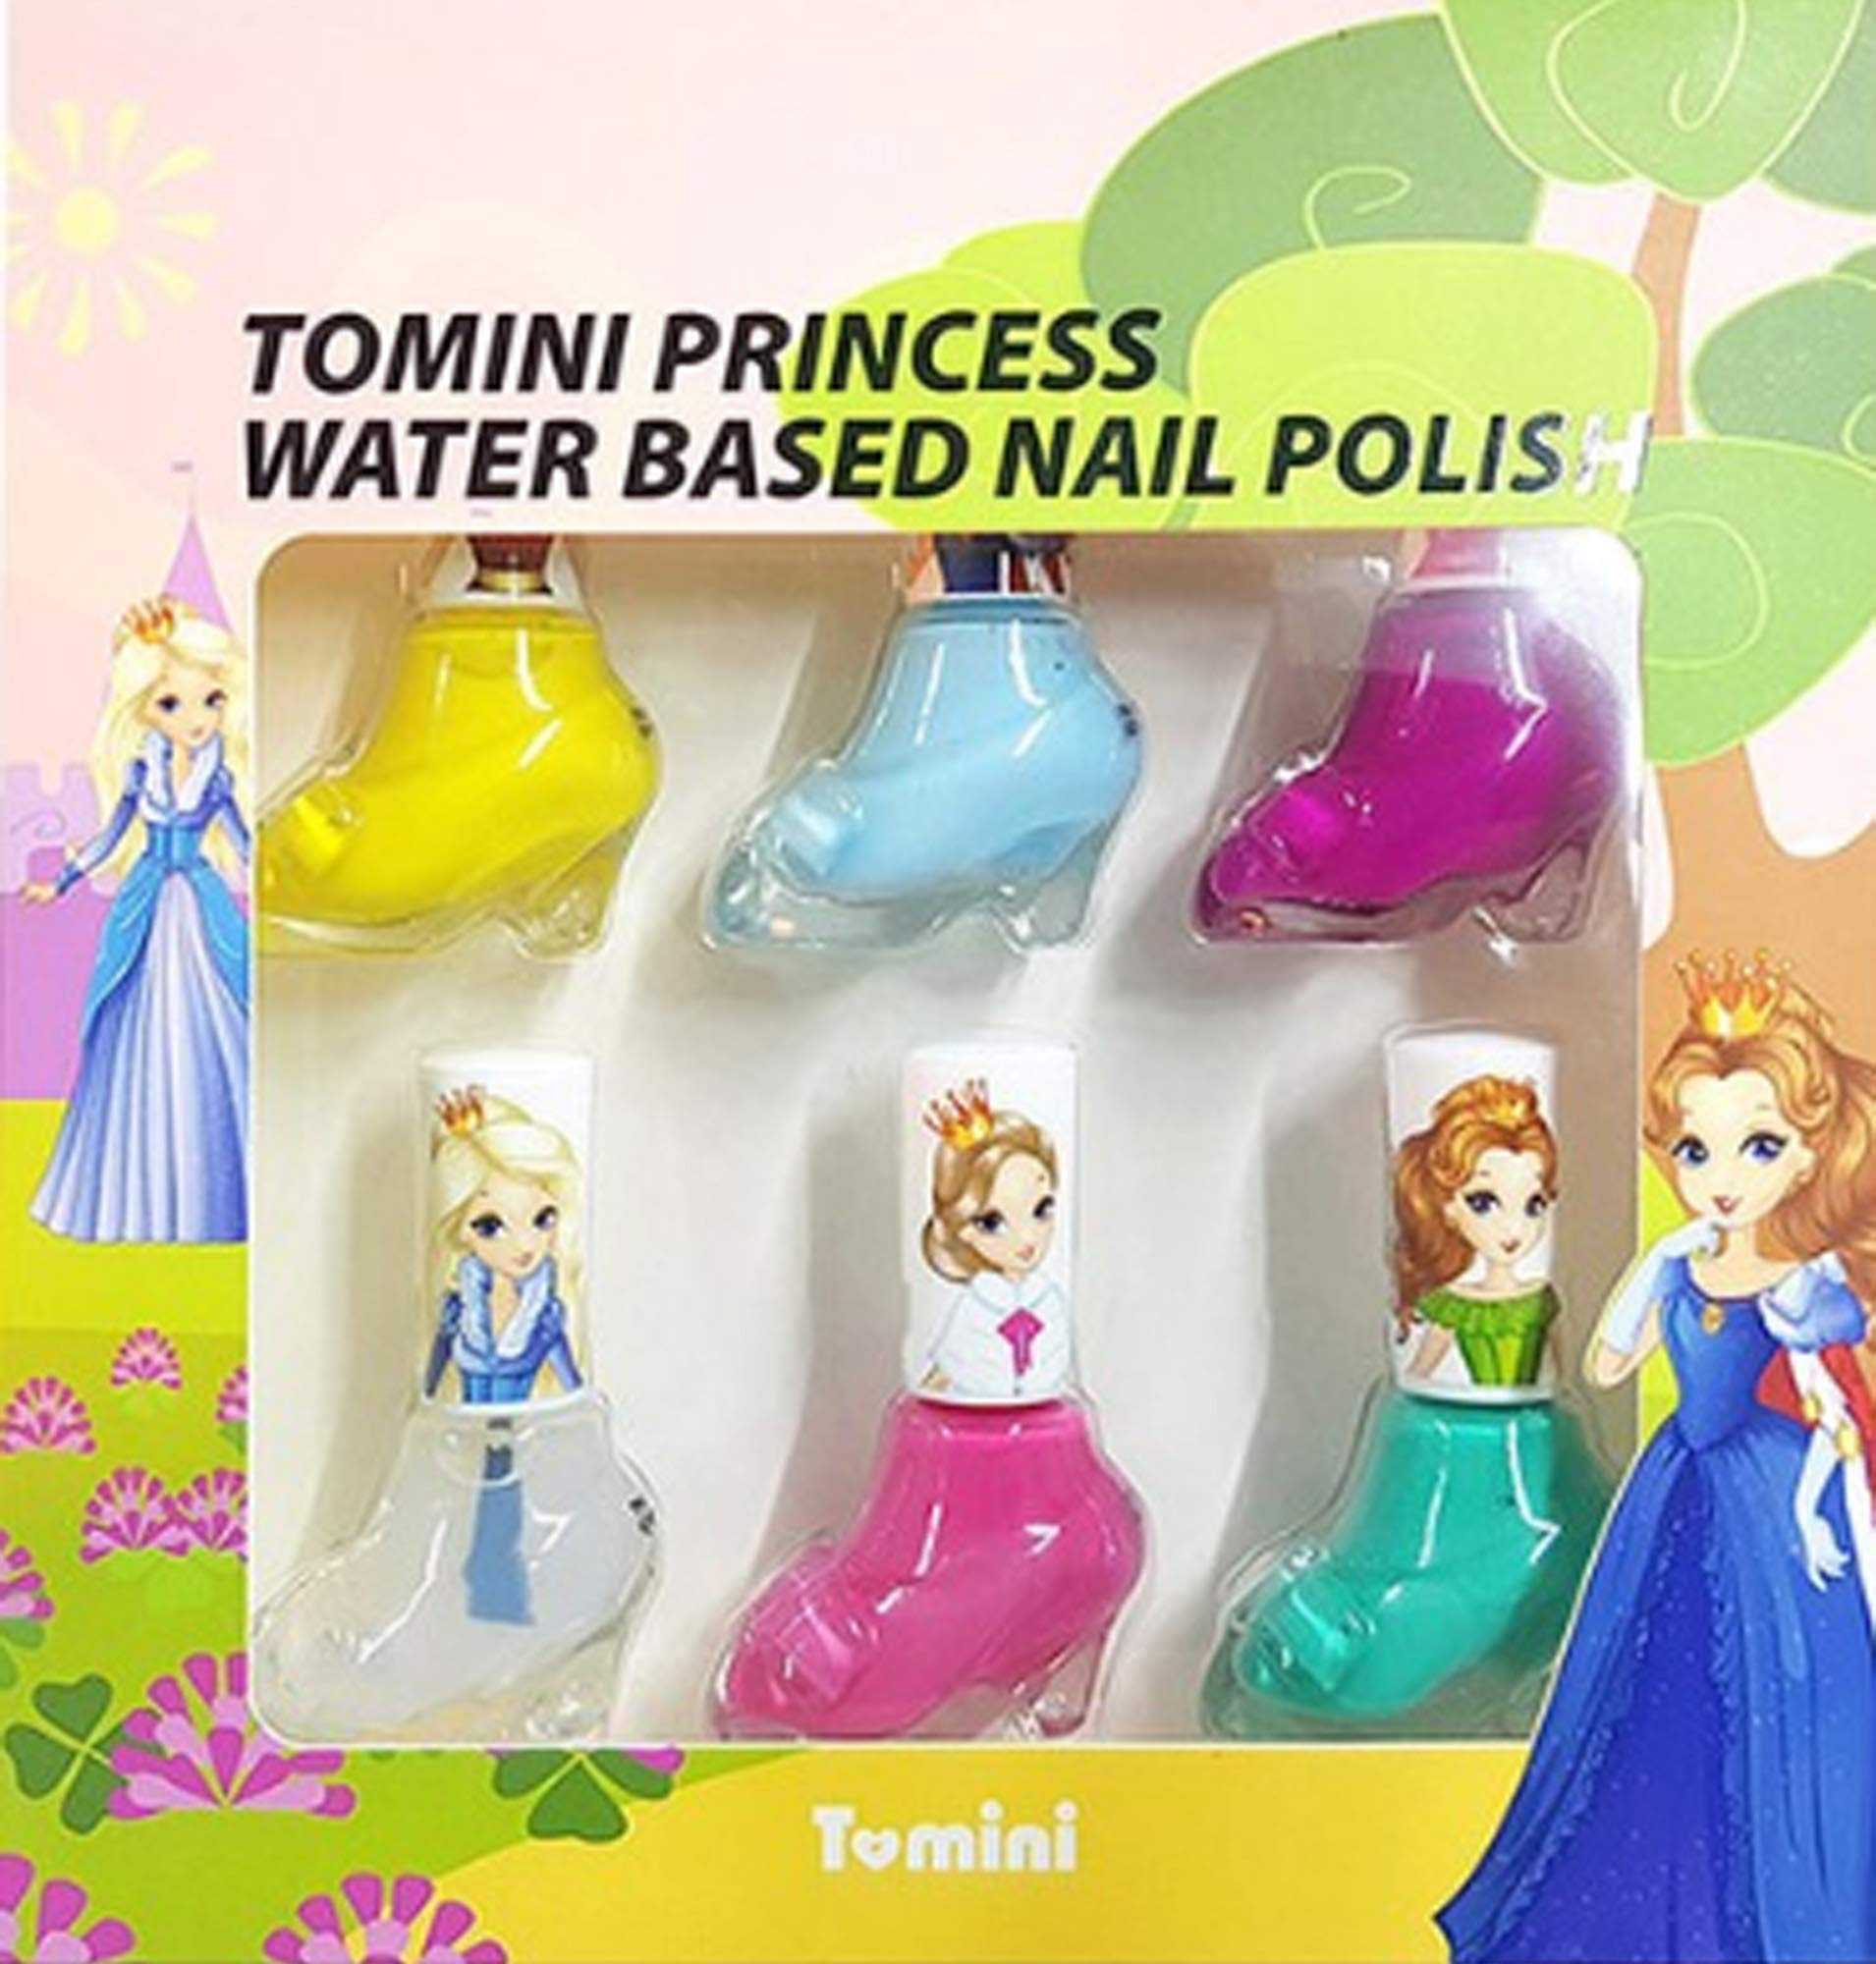 TOMINI Princess Nail manicure set Nail Art Non-Toxic Water-Based Safe Peel Off Nail Care Gift Quick Dry Nail Polish Gifts Toys Kit for Girls Kids Toddlers 0.27oz x 6ea made in korea by TOMINI